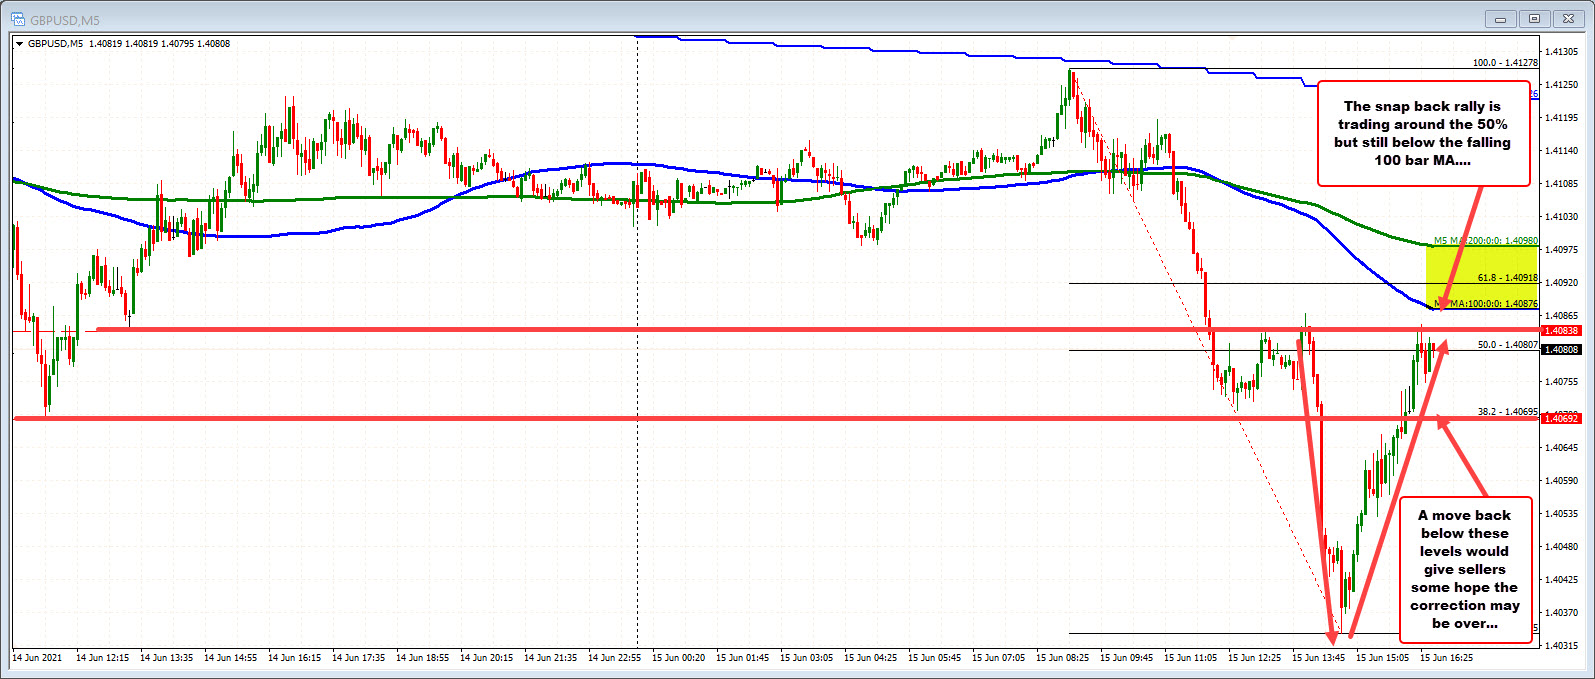 GBPUSD on the 5 mintue chart